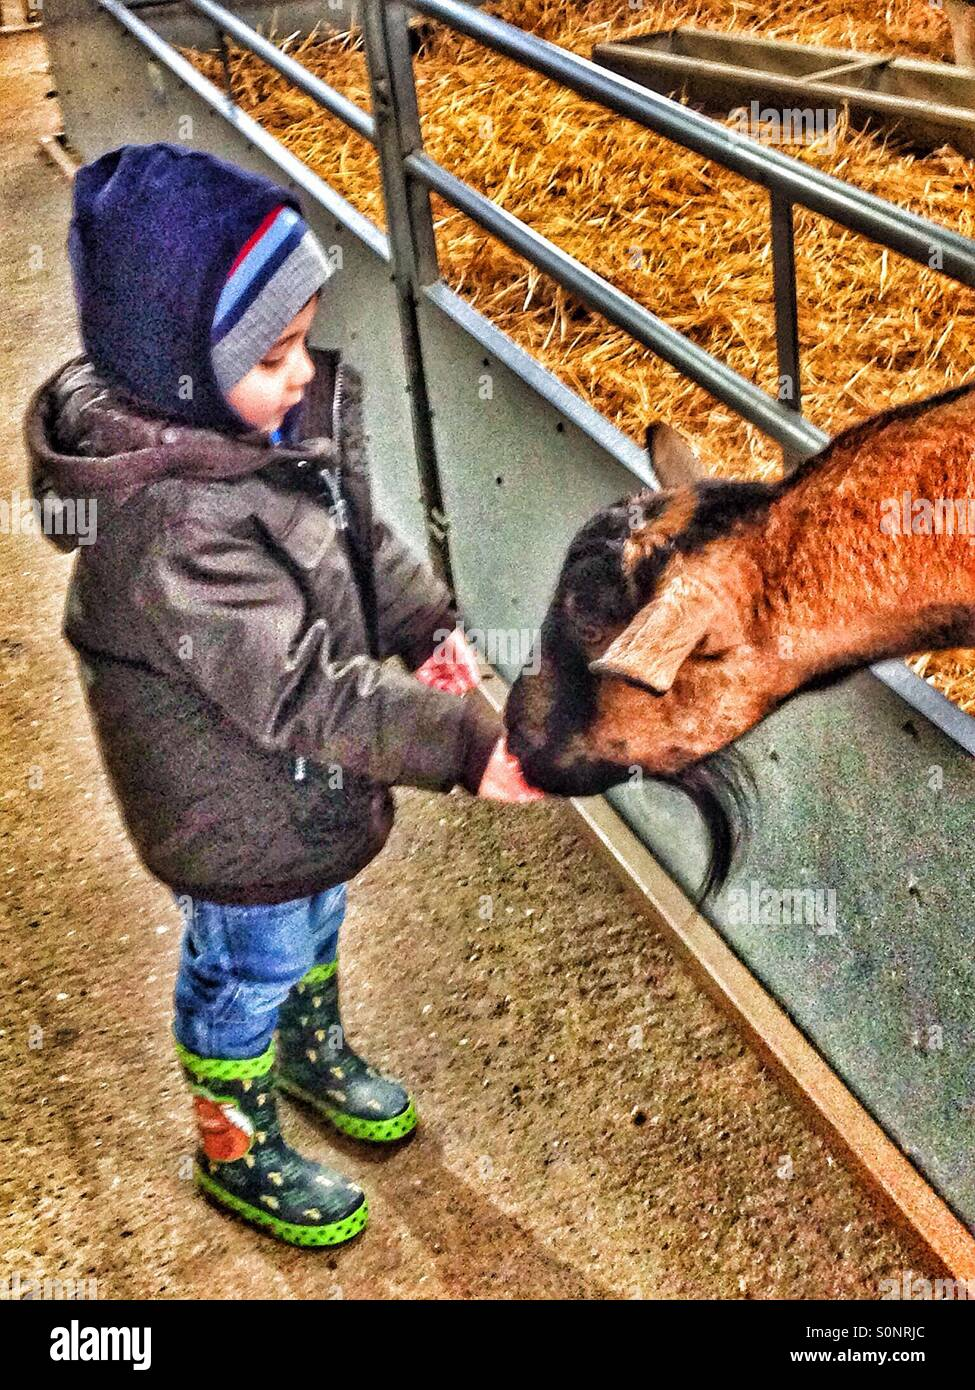 Young boy feeding a goat. - Stock Image